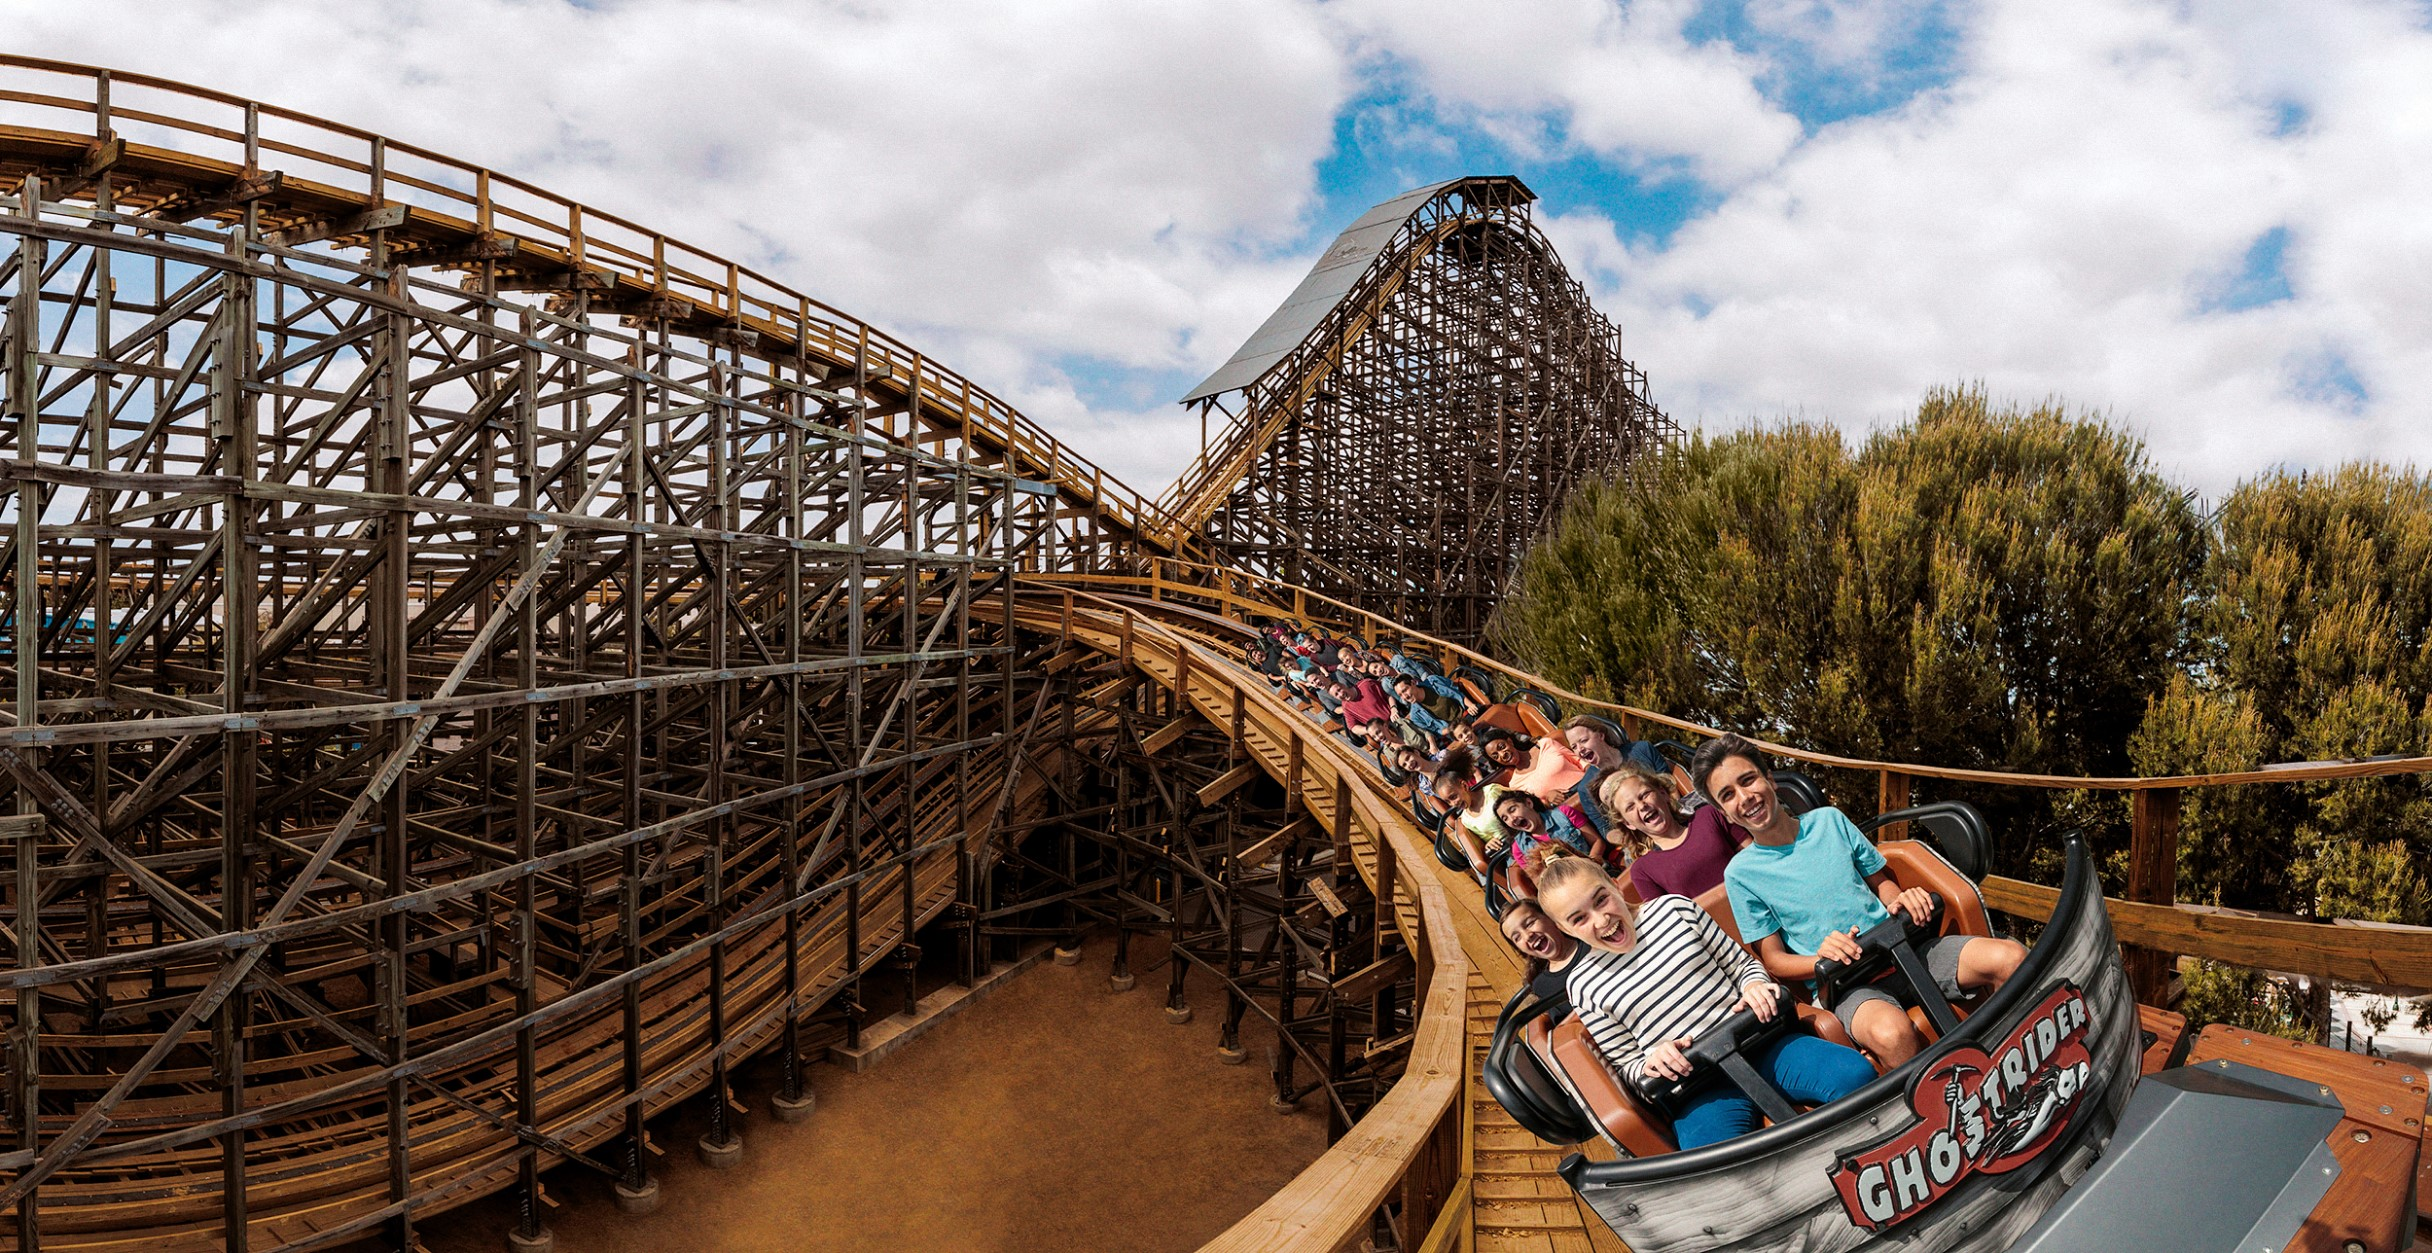 Knott's Berry Farm: Rides, Boysenberry Pies, and a Celebration of the Old West